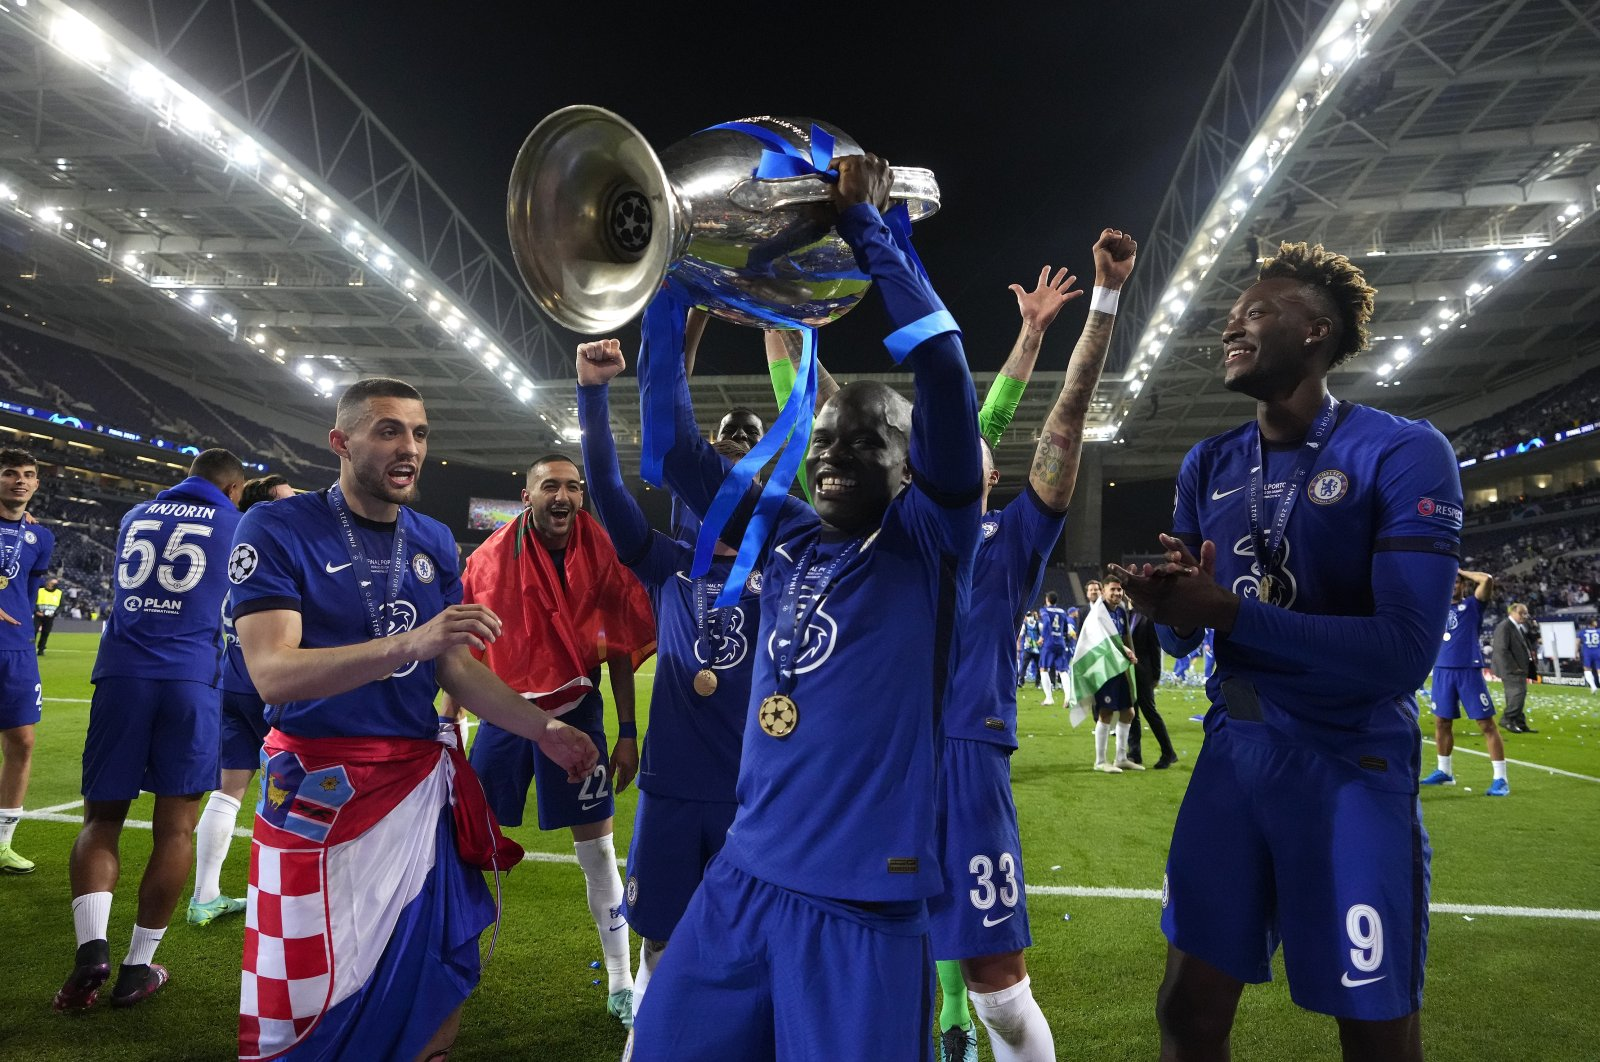 N'Golo Kante of Chelsea celebrates with the Champions League trophy following their team's victory in the UEFA Champions League Final between Manchester City and Chelsea FC at Estadio do Dragao, in Porto, Portugal, May 29, 2021. (Photo by Getty Images)